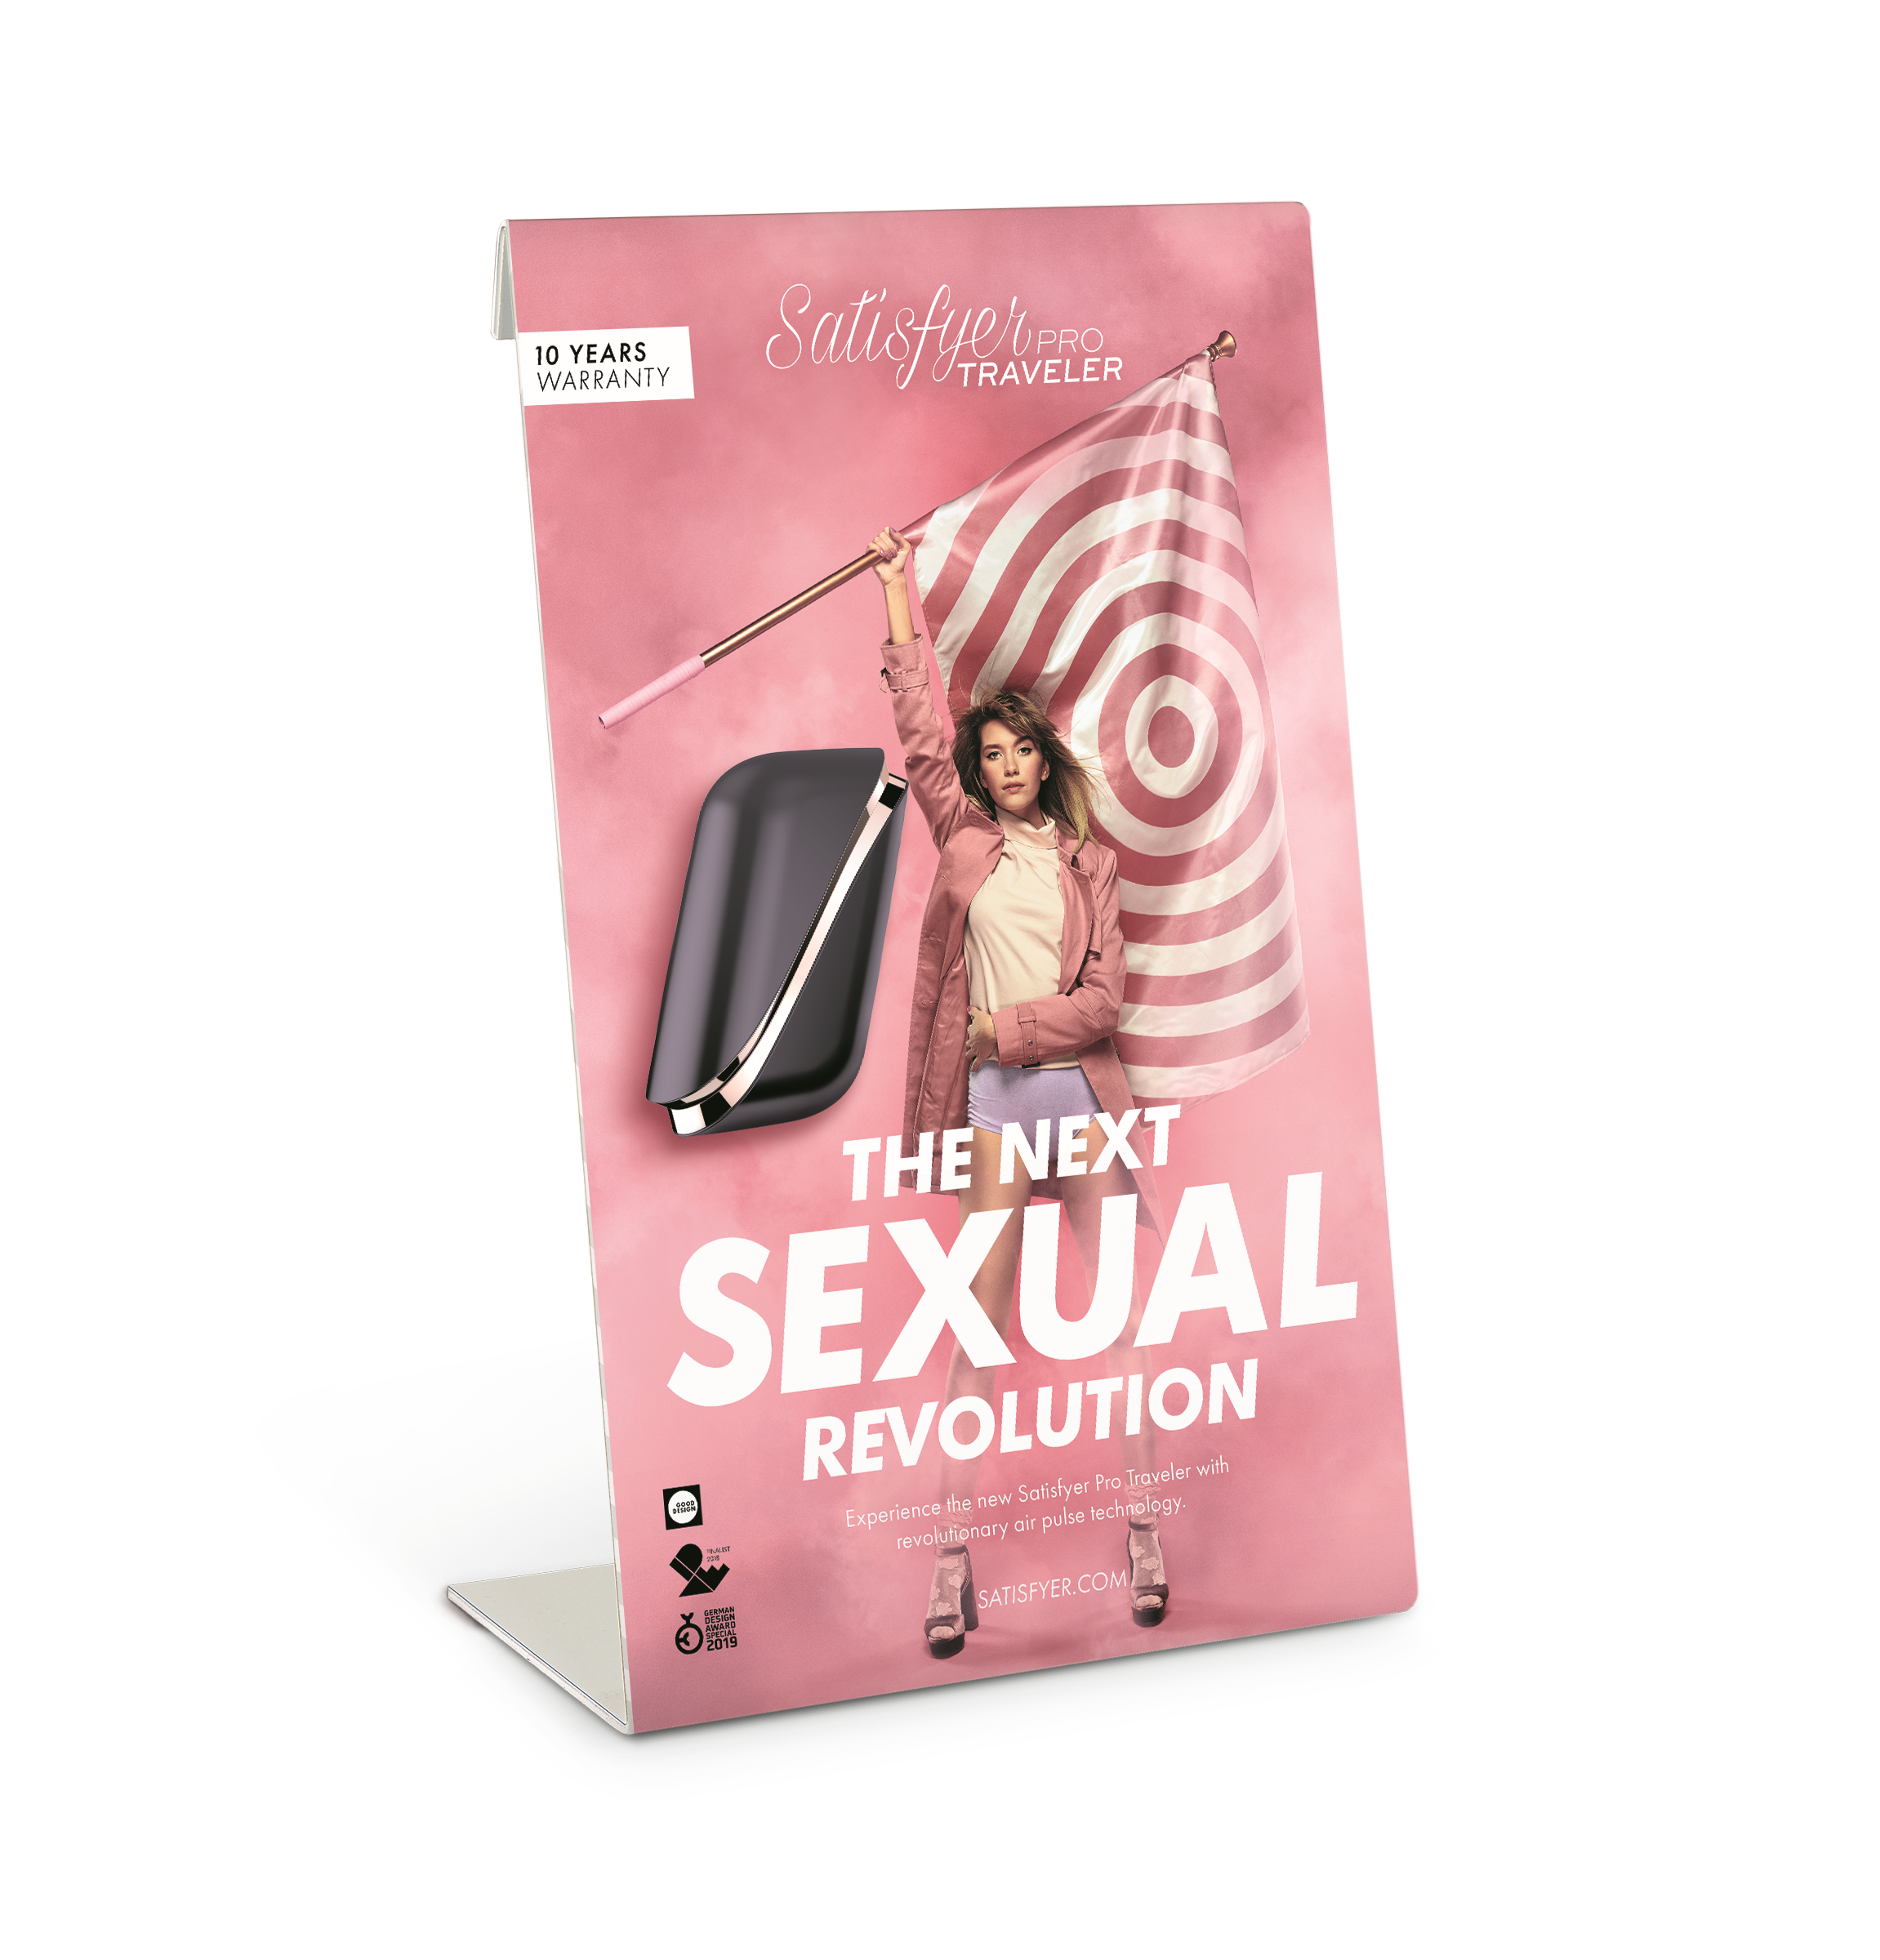 Satisfyer_Pro_Traveler_Sale_Display